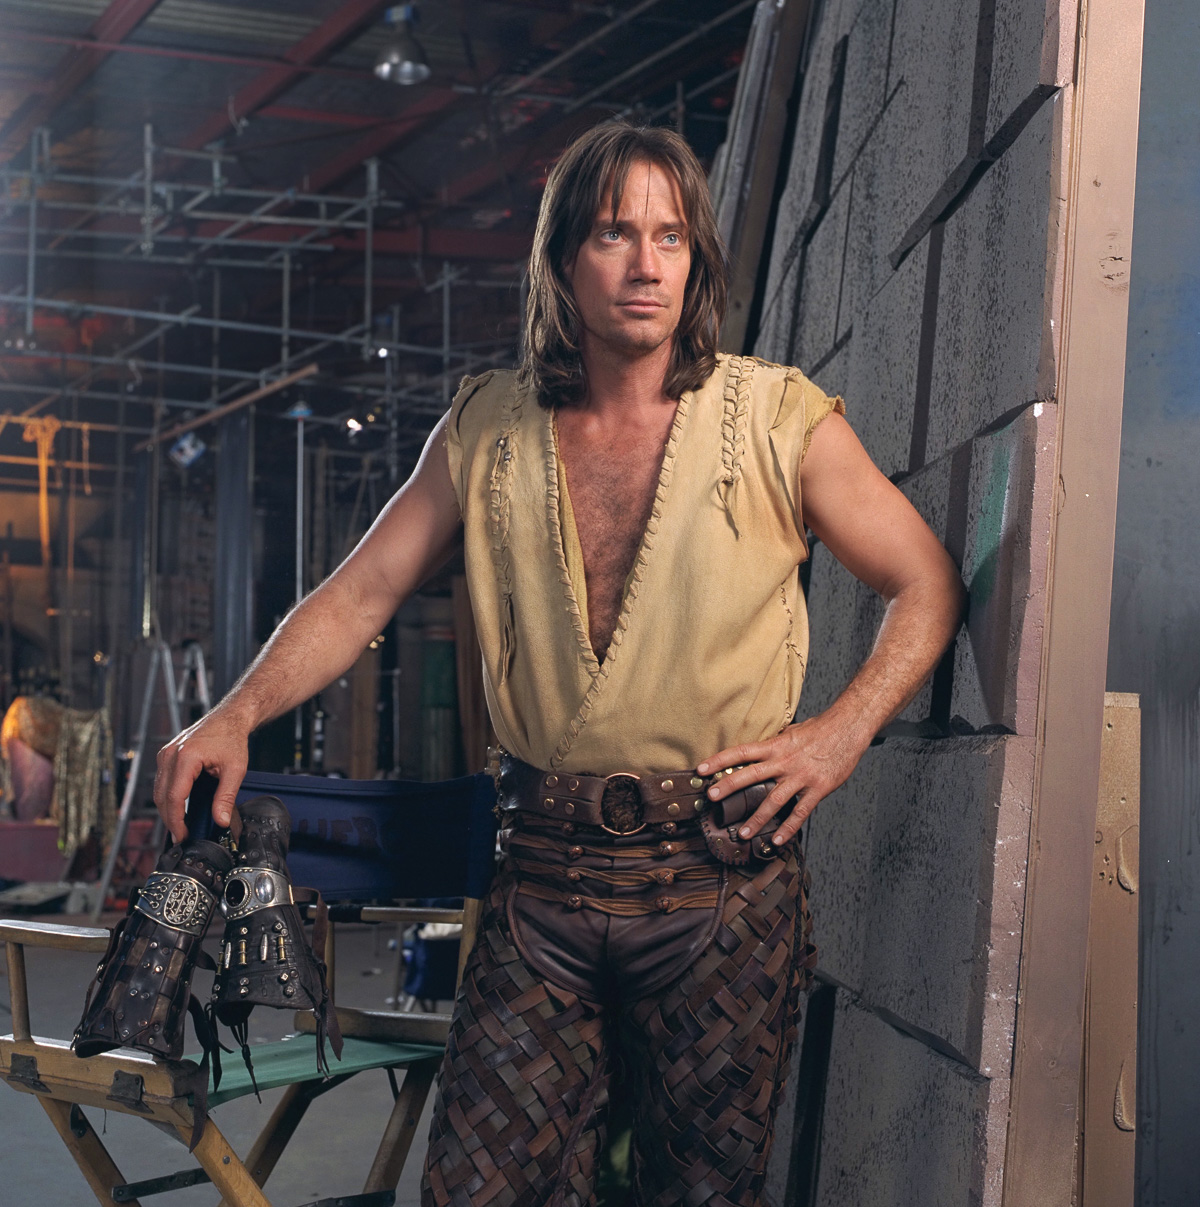 Kevin Sorbo hangs up his gauntlets on the set of 'Hercules', 1999.